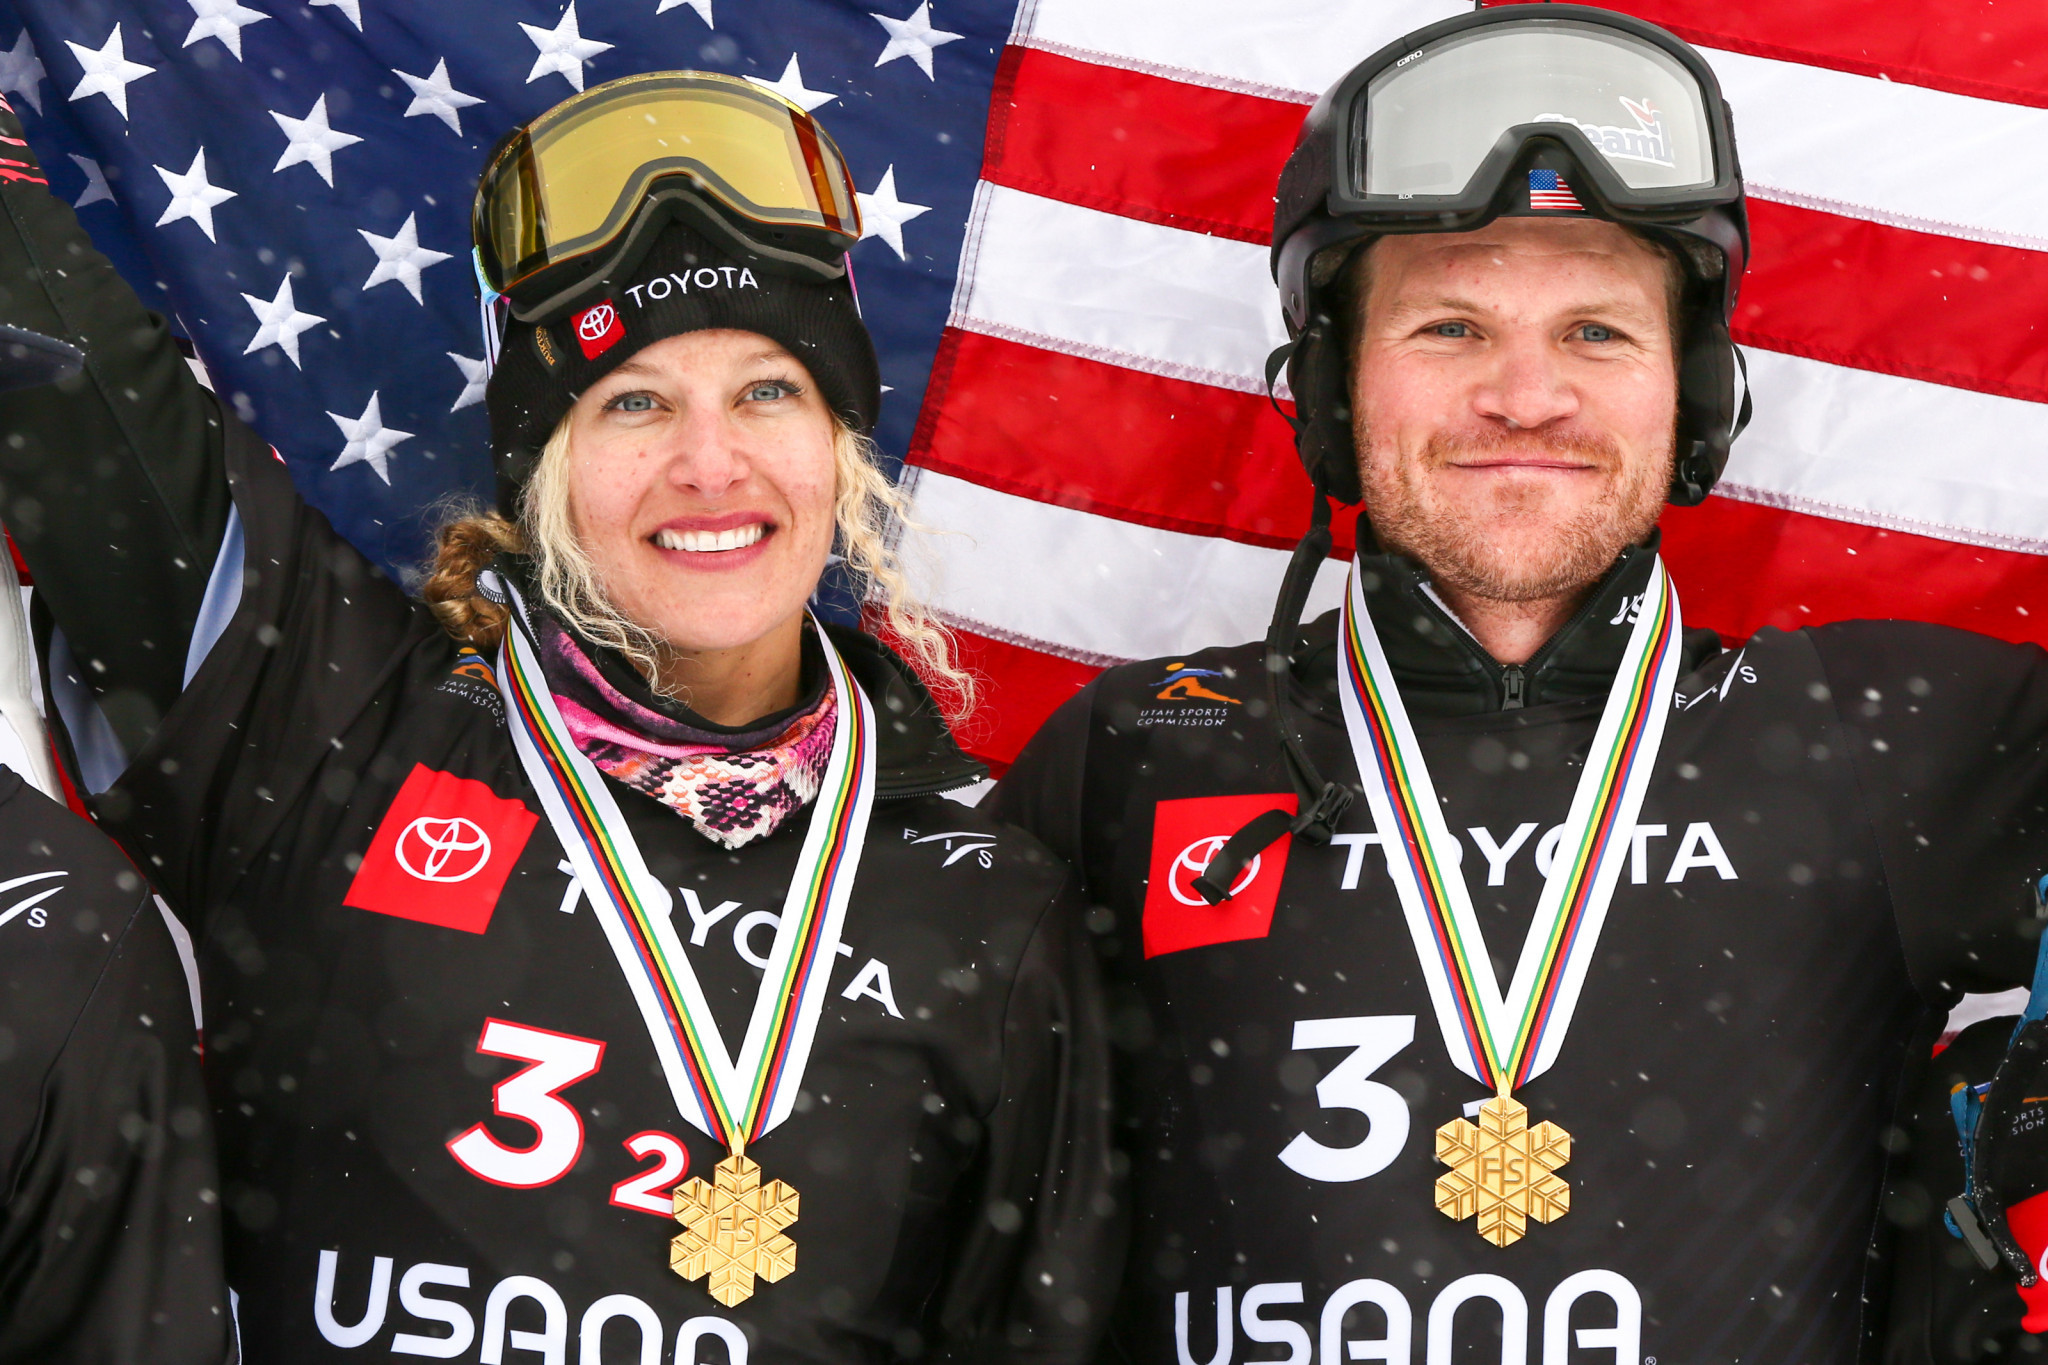 Lindsey Jacobellis and Mick Dierdorff came together to win the first world mixed team snowboard cross title in Utah ©Getty Images